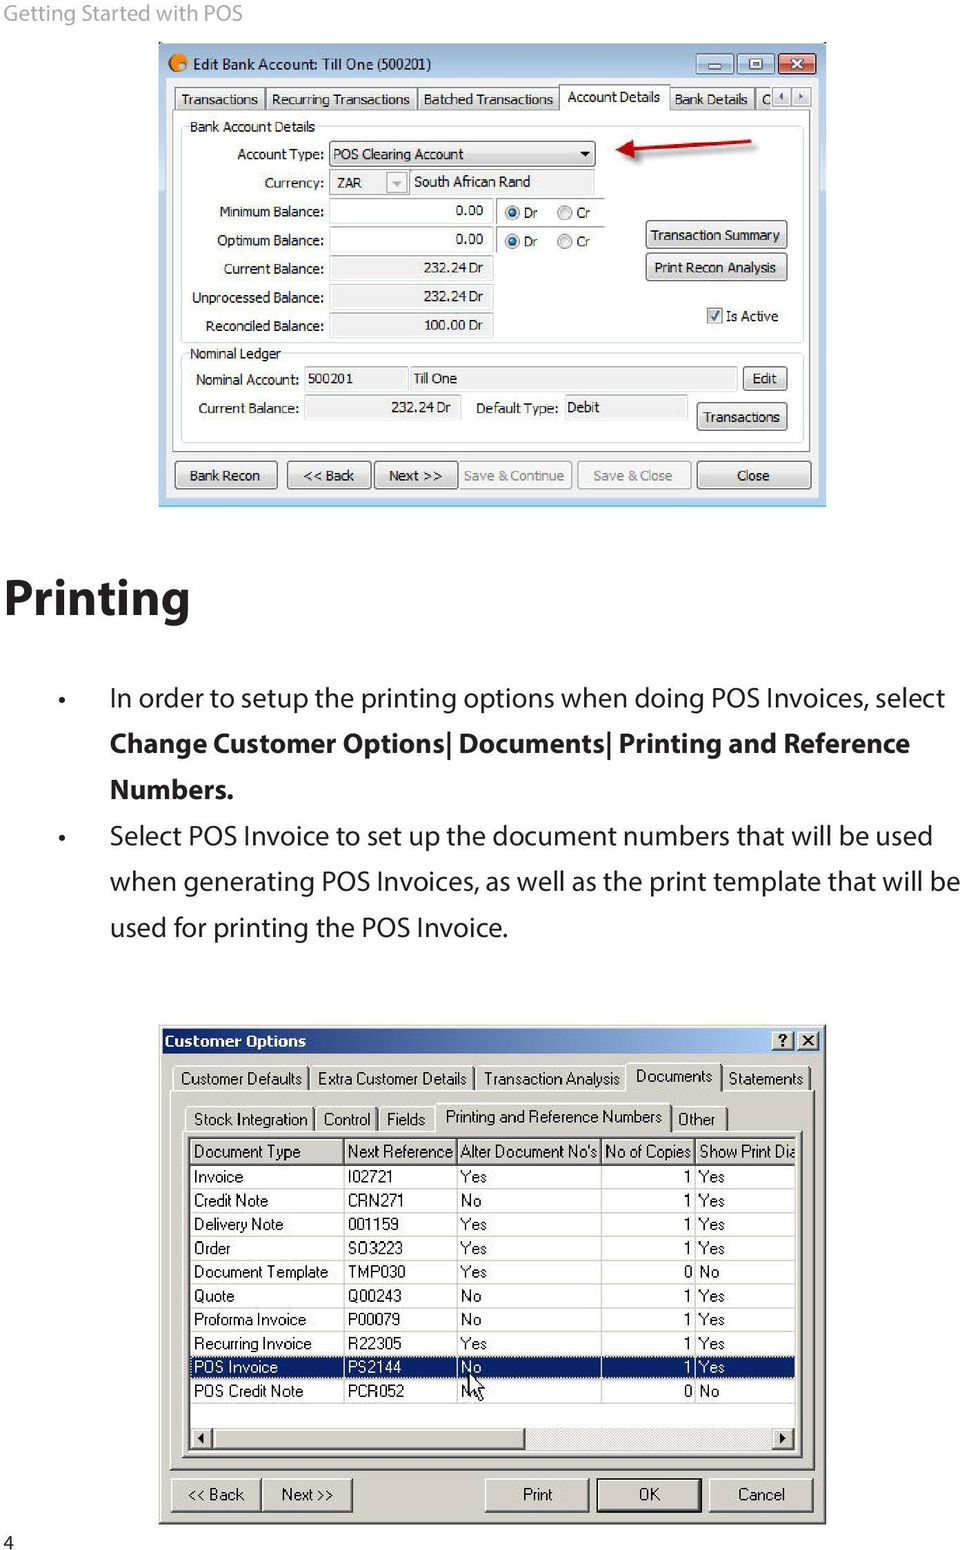 Select POS Invoice to set up the document numbers that will be used when